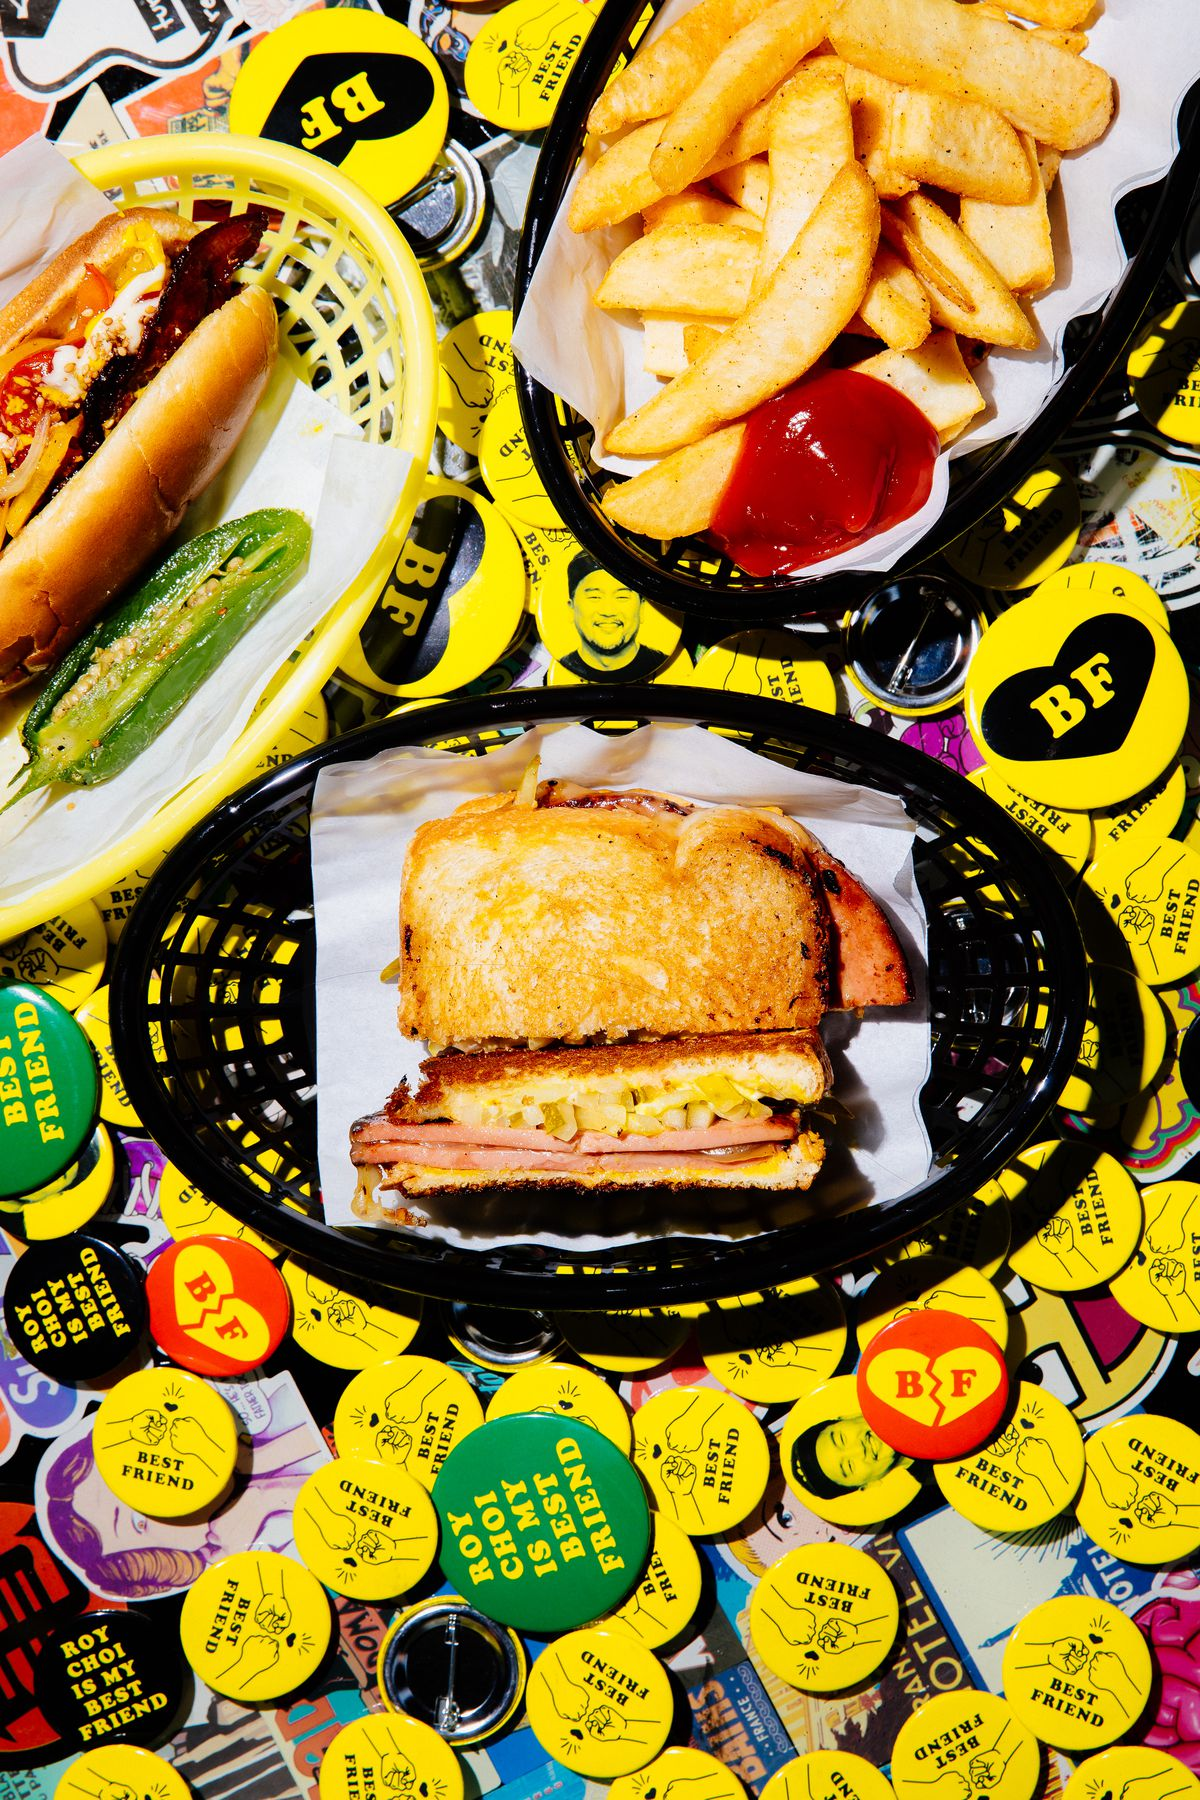 Fried bologna sandwich, a street dog, and fries at Best Friend, on the late-night menu